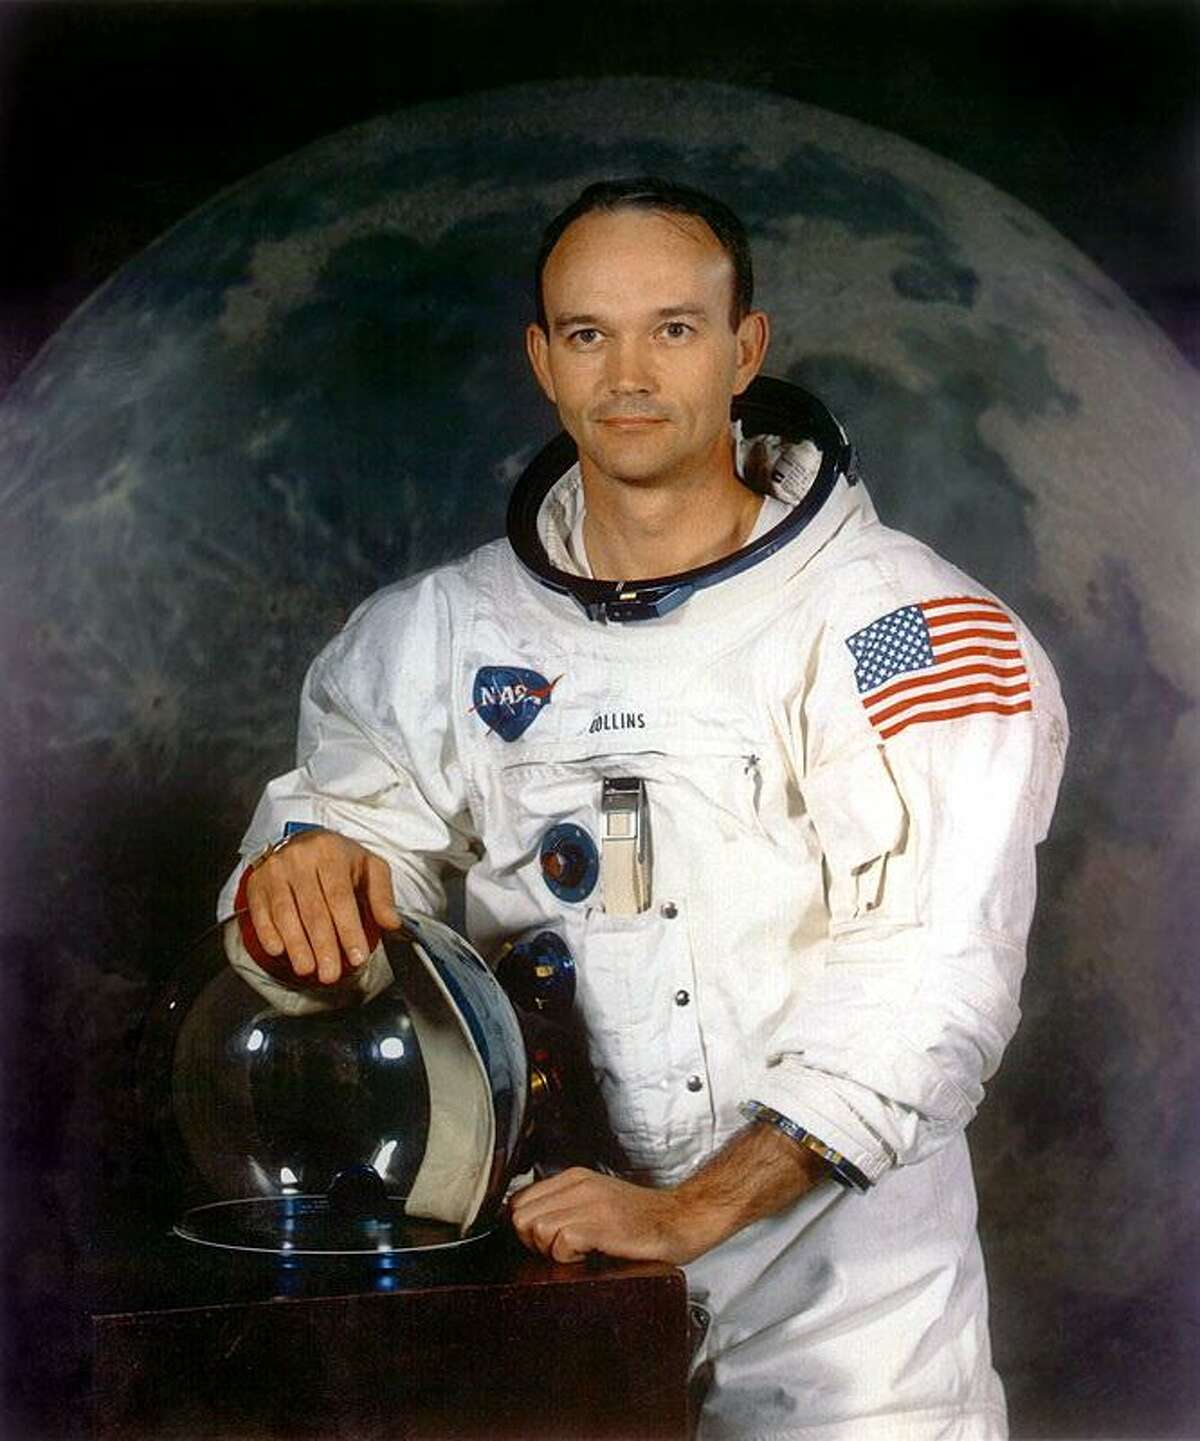 A handout portrait taken in July 1969 shows astronaut Michael Collins, command module pilot of the Apollo 11 moon landing mission. Collins orbited the moon while Neil Armstrong and Buzz Aldrin walked on the lunar surface for the first time.